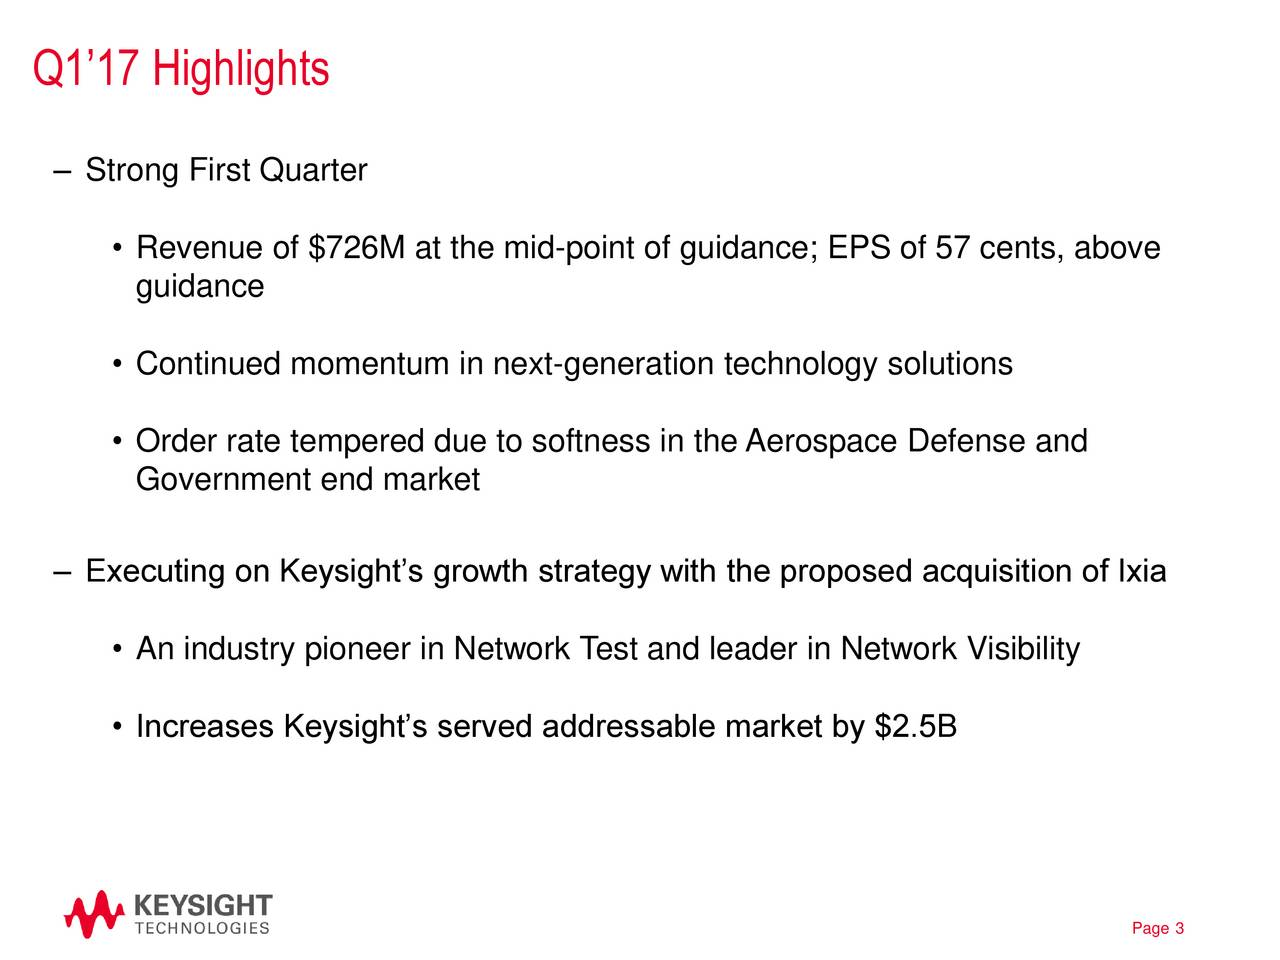 Strong First Quarter Revenue of $726M at the mid-point of guidance; EPS of 57 cents, above guidance Continued momentum in next-generation technology solutions Order rate tempered due to softness in the Aerospace Defense and Government end market Executing on Keysights growth strategy with the proposed acquisition of Ixia An industry pioneer in Network Test and leader in Network Visibility Increases Keysights served addressable market by $2.5B Page 3